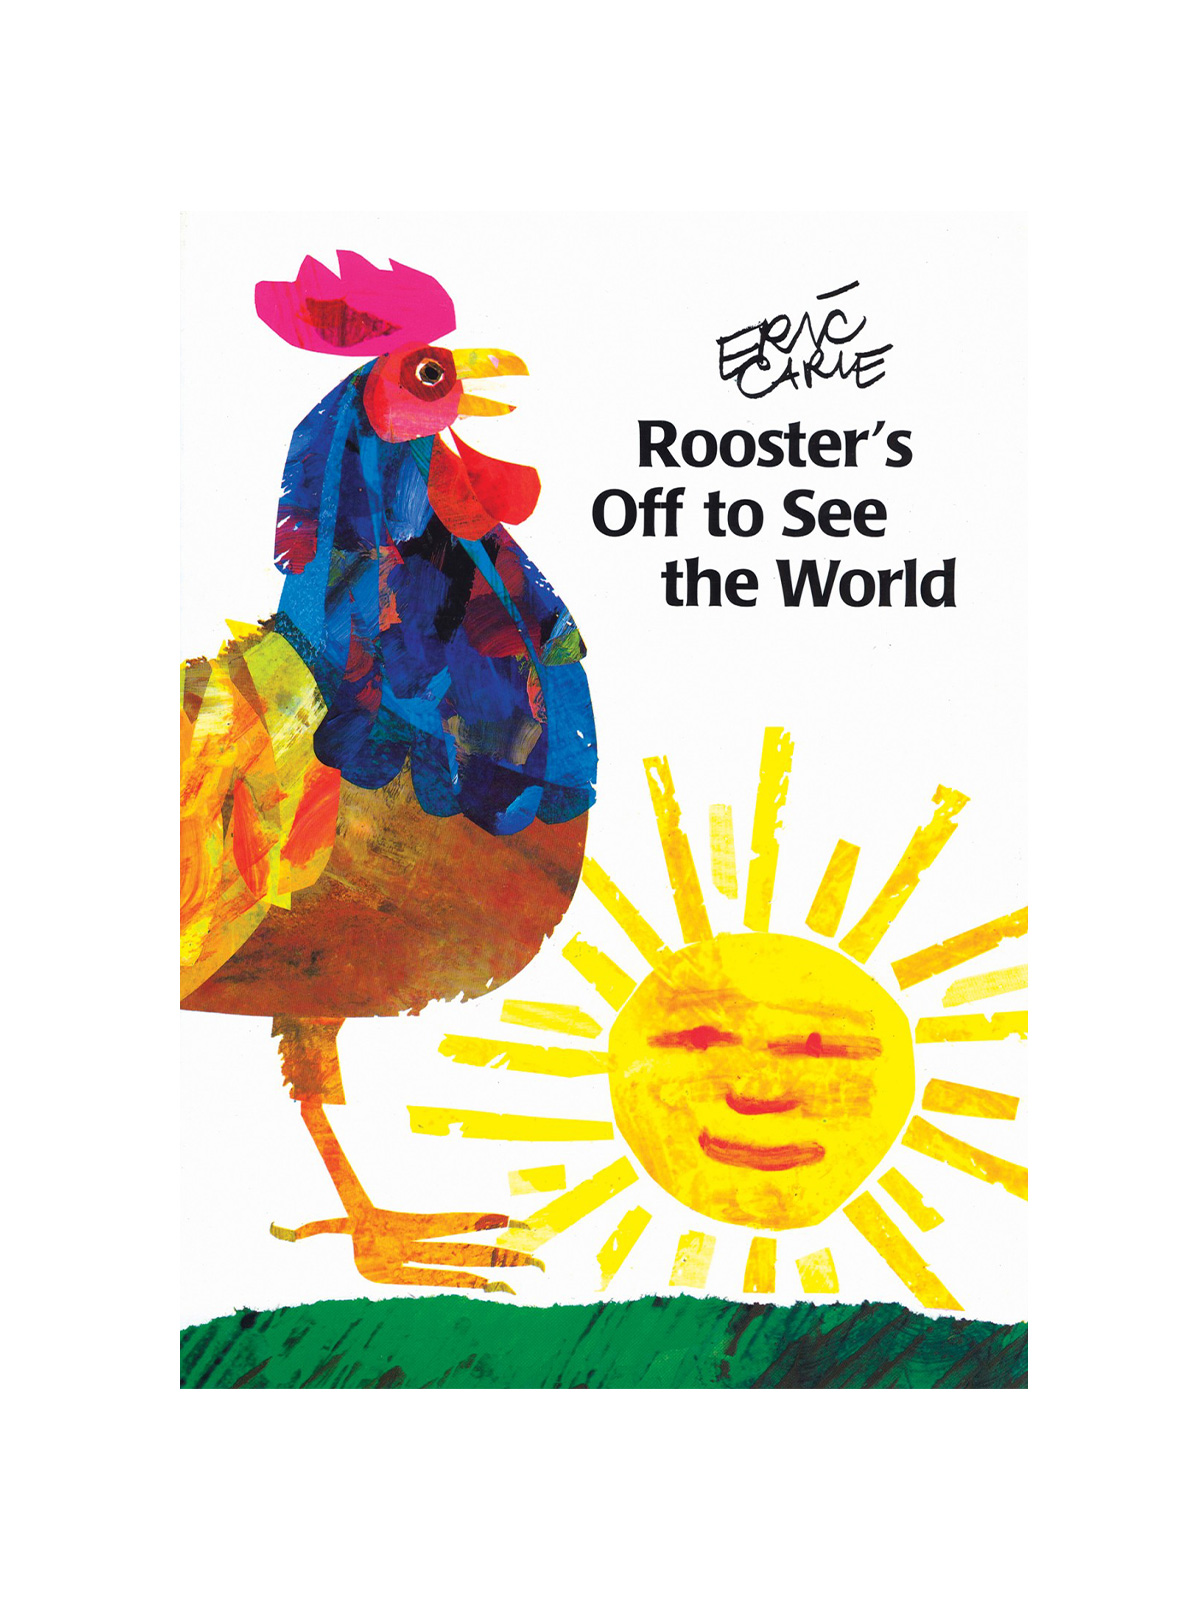 chm-eric-carle-roosters-off-to-see-the-world